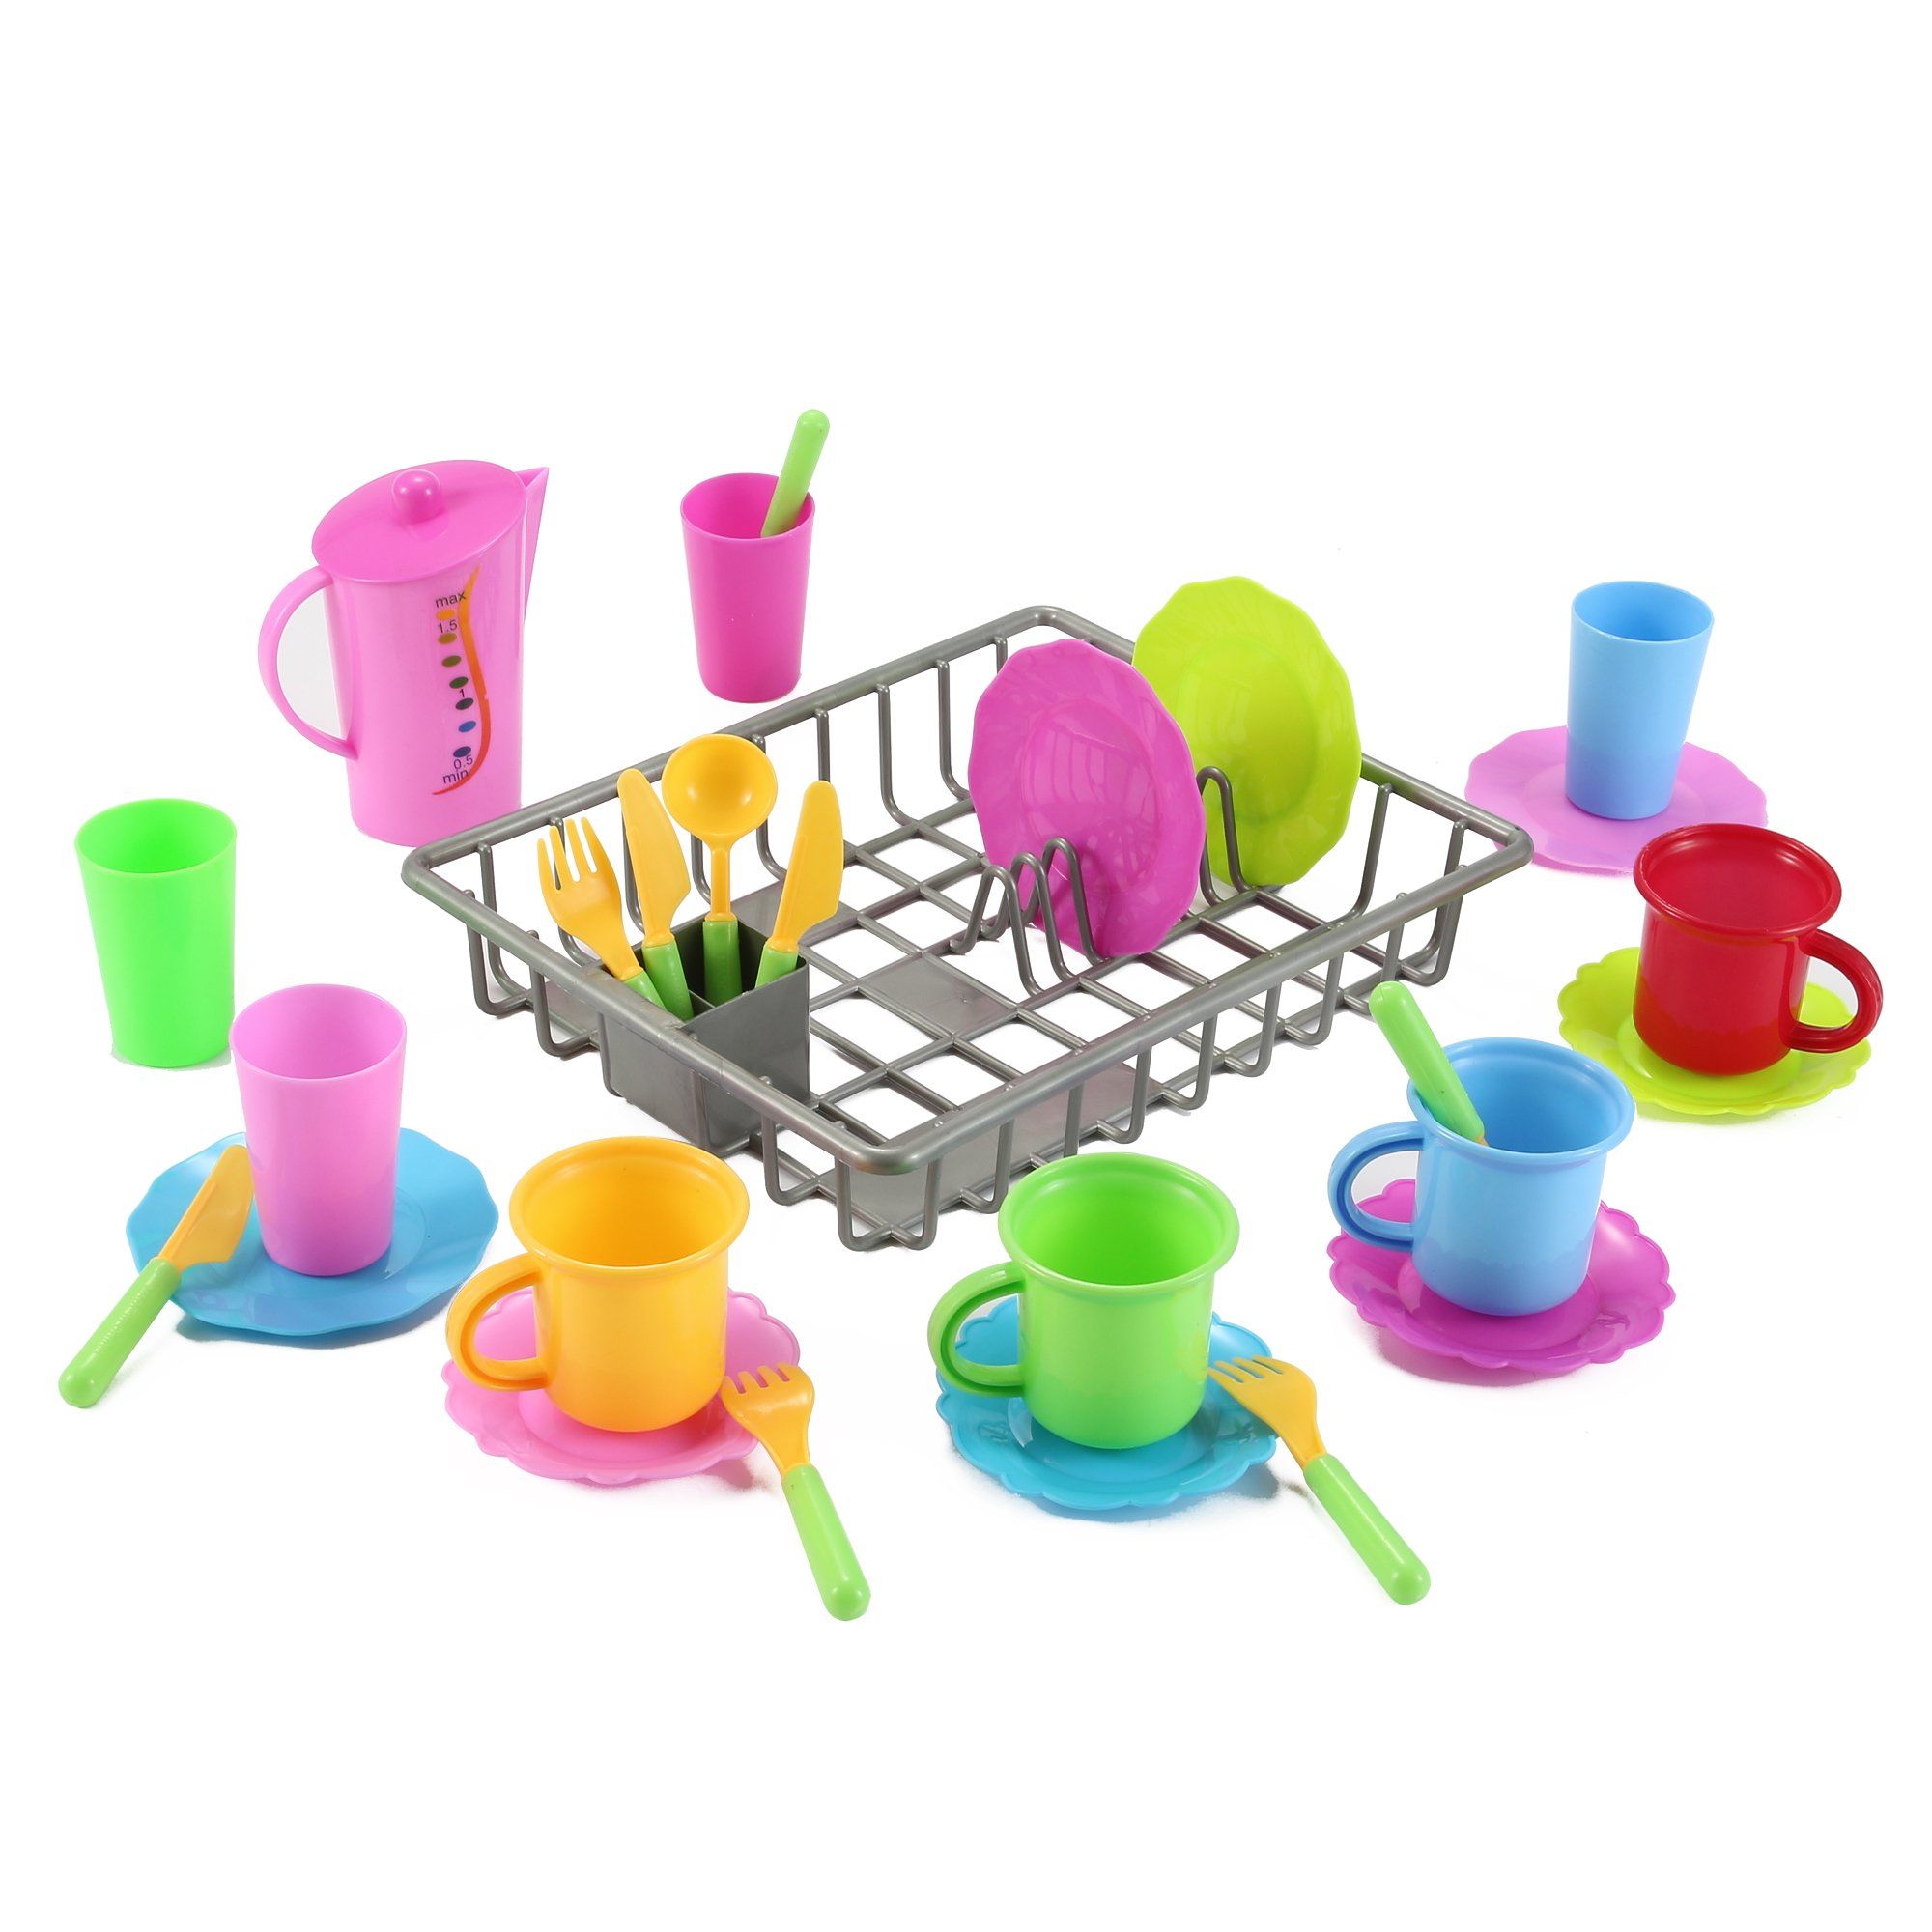 Pretend Play Kitchen Dishes Toy Children Plastic Accessories 27